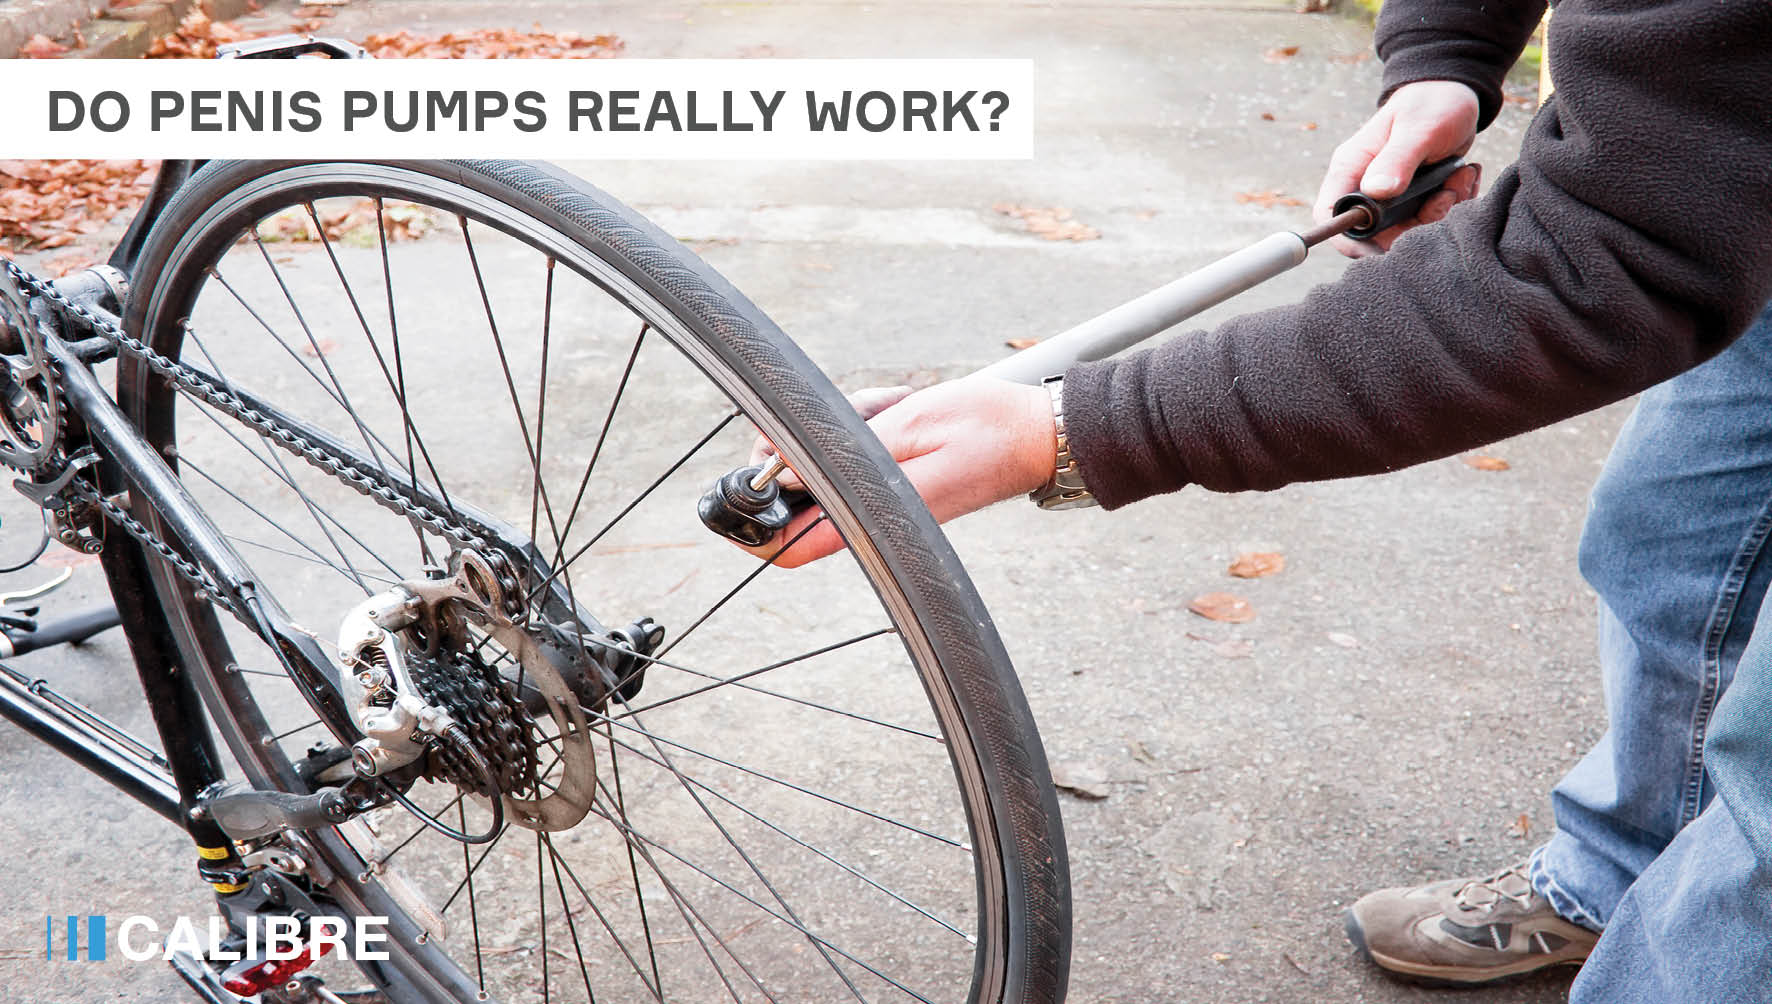 Do penis pumps really work revised blog cover